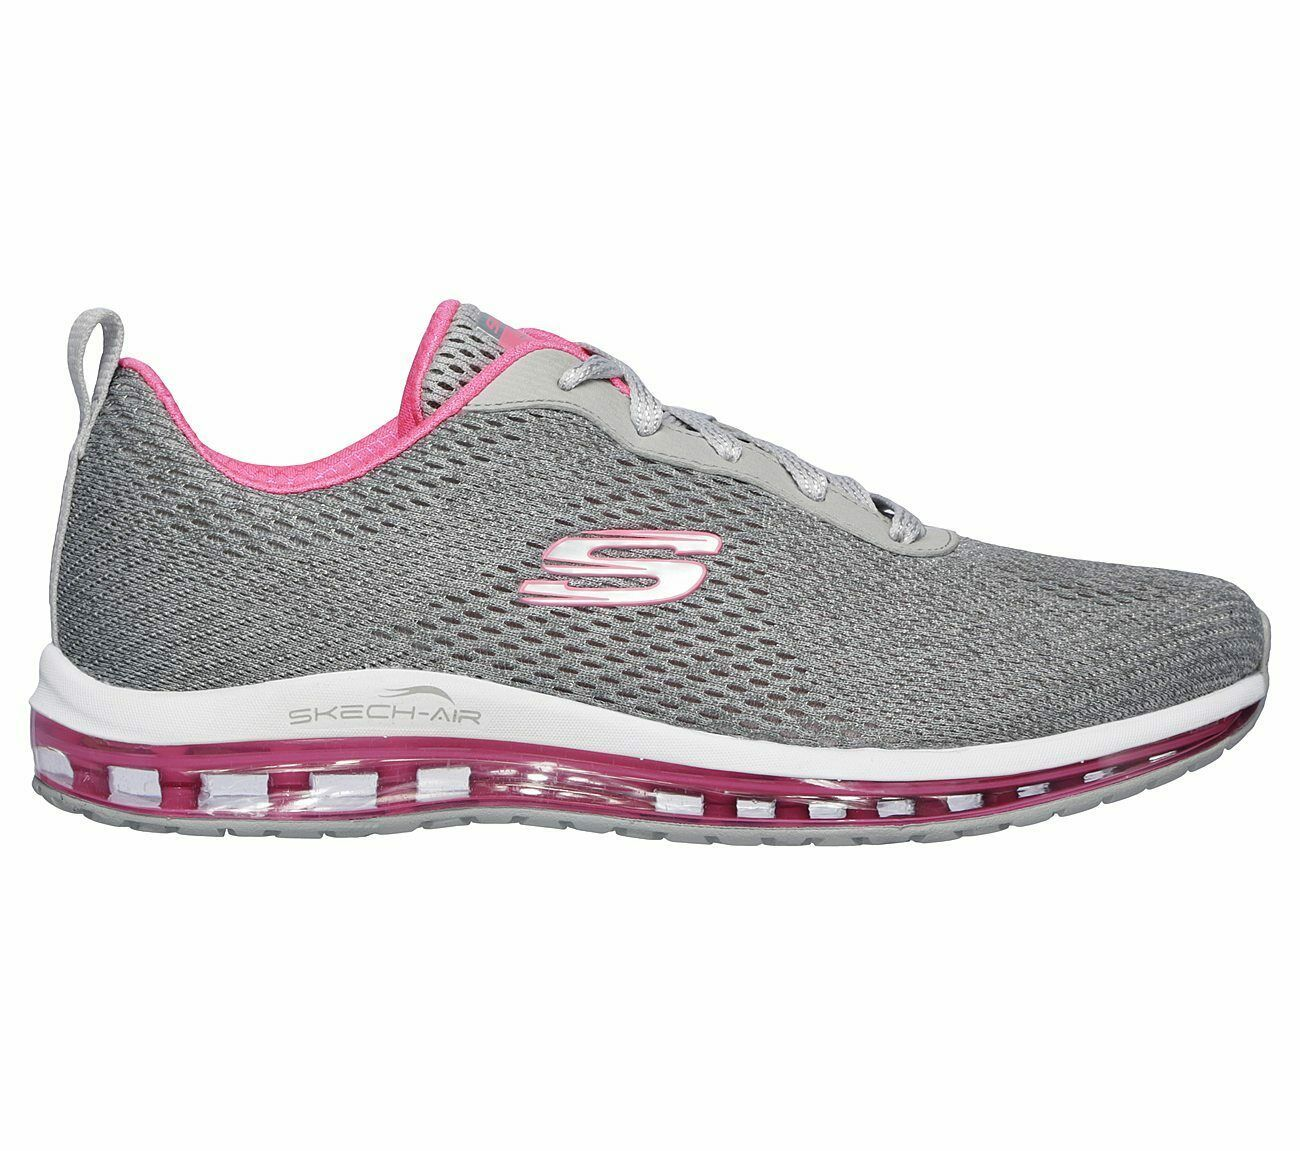 Skechers Shoes Women Gray Pink Memory Foam Sport Air Cushion Mesh Comfort 12644 image 2